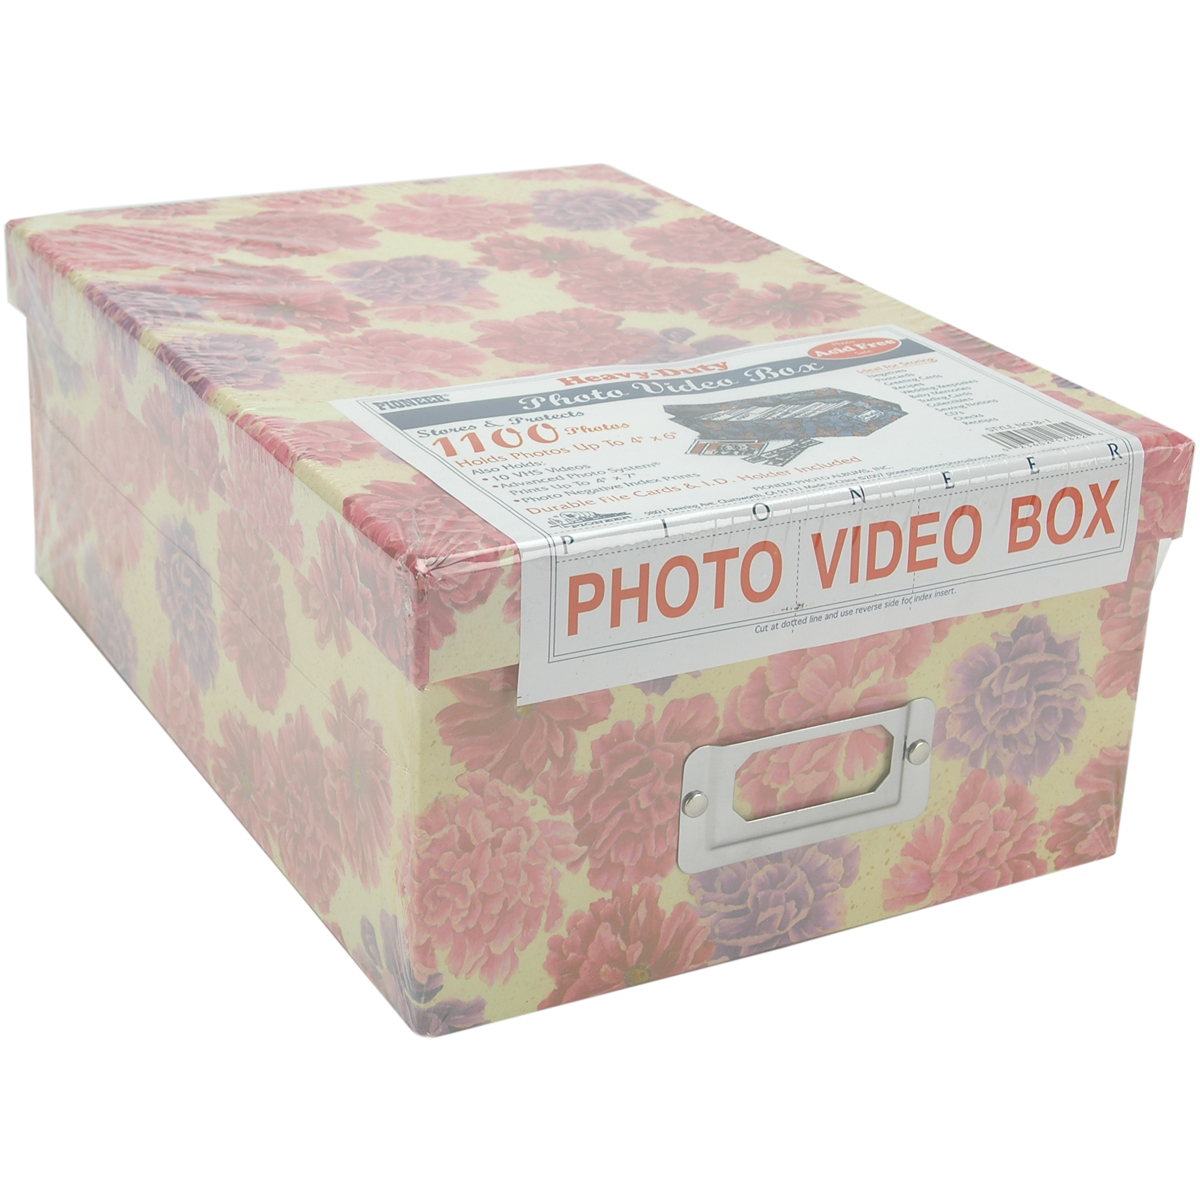 "Pioneer Photo/Video Box, 4.5"" x 8"" x 11.5"